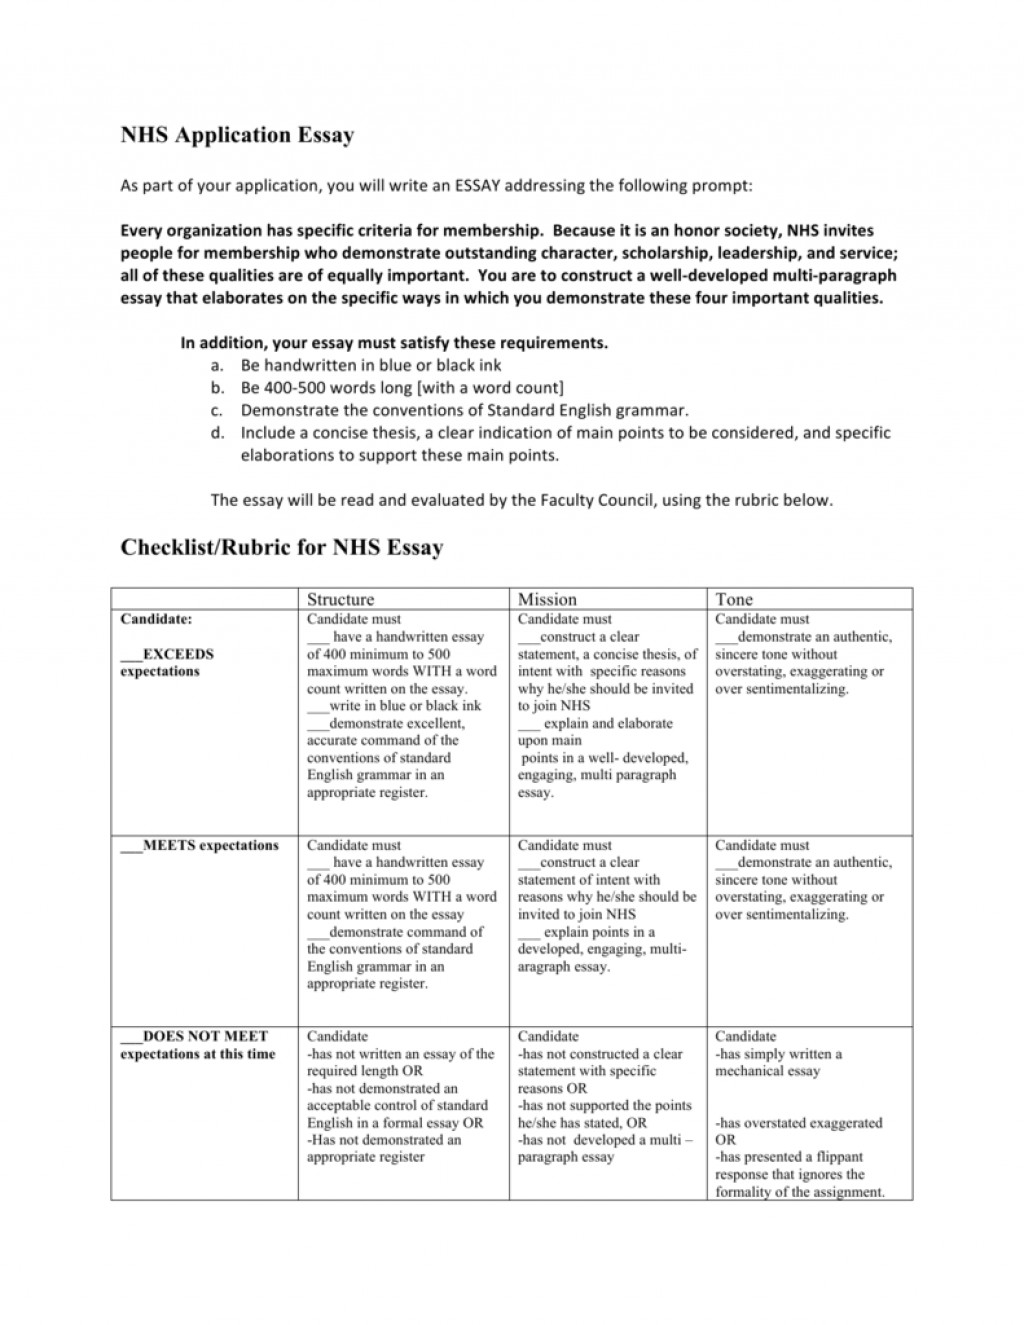 008 Nhs Essay 008112556 1 Stupendous Tips Requirements Prompt Large